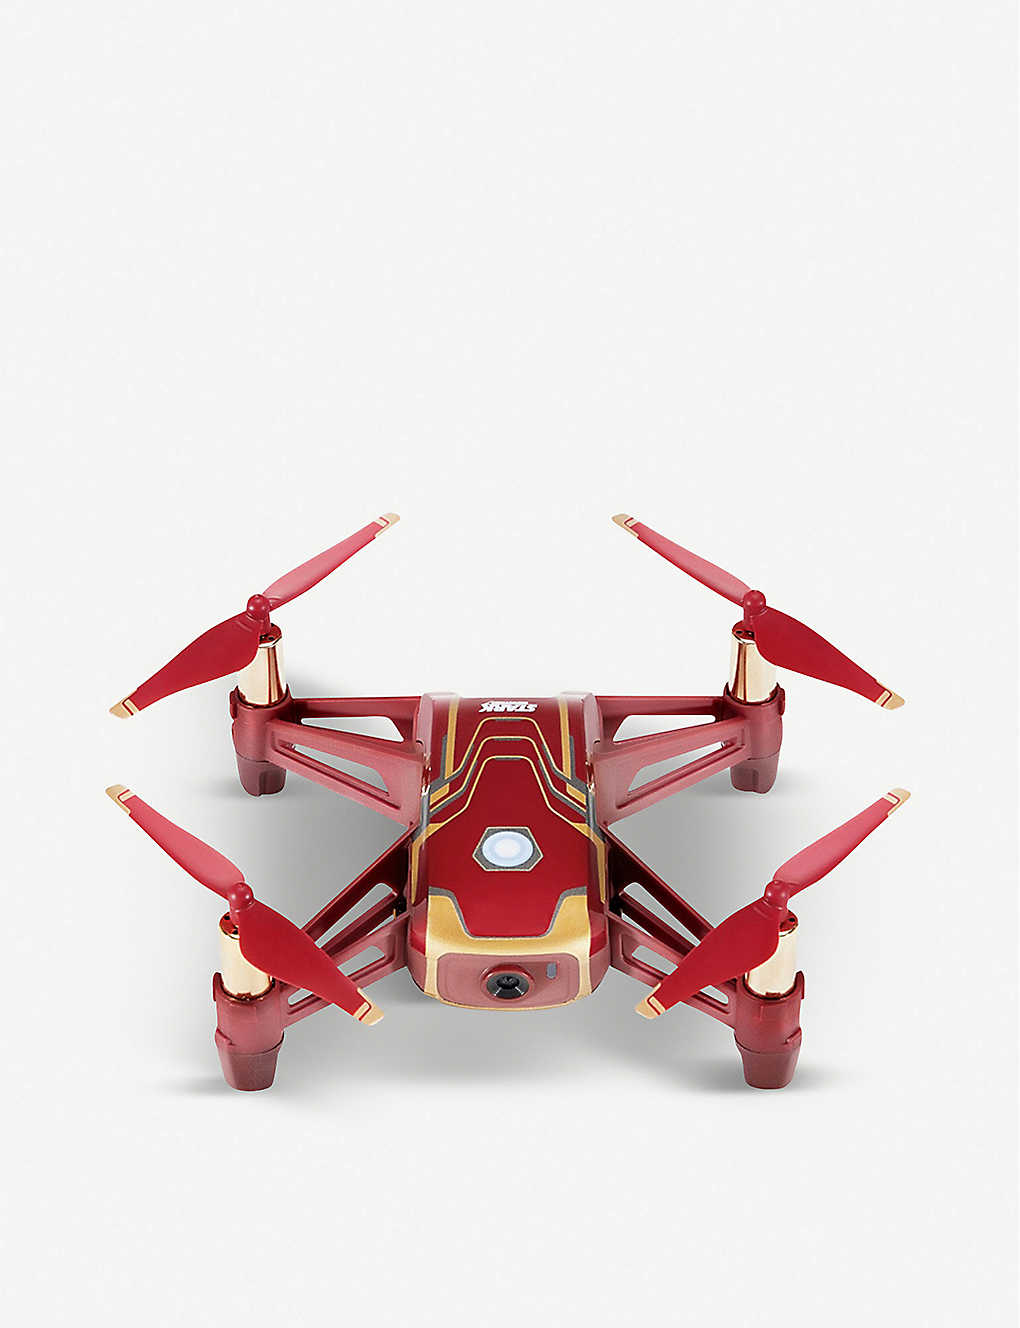 cf58aeae96f DJI - Tello Iron Man Edition Drone | Selfridges.com